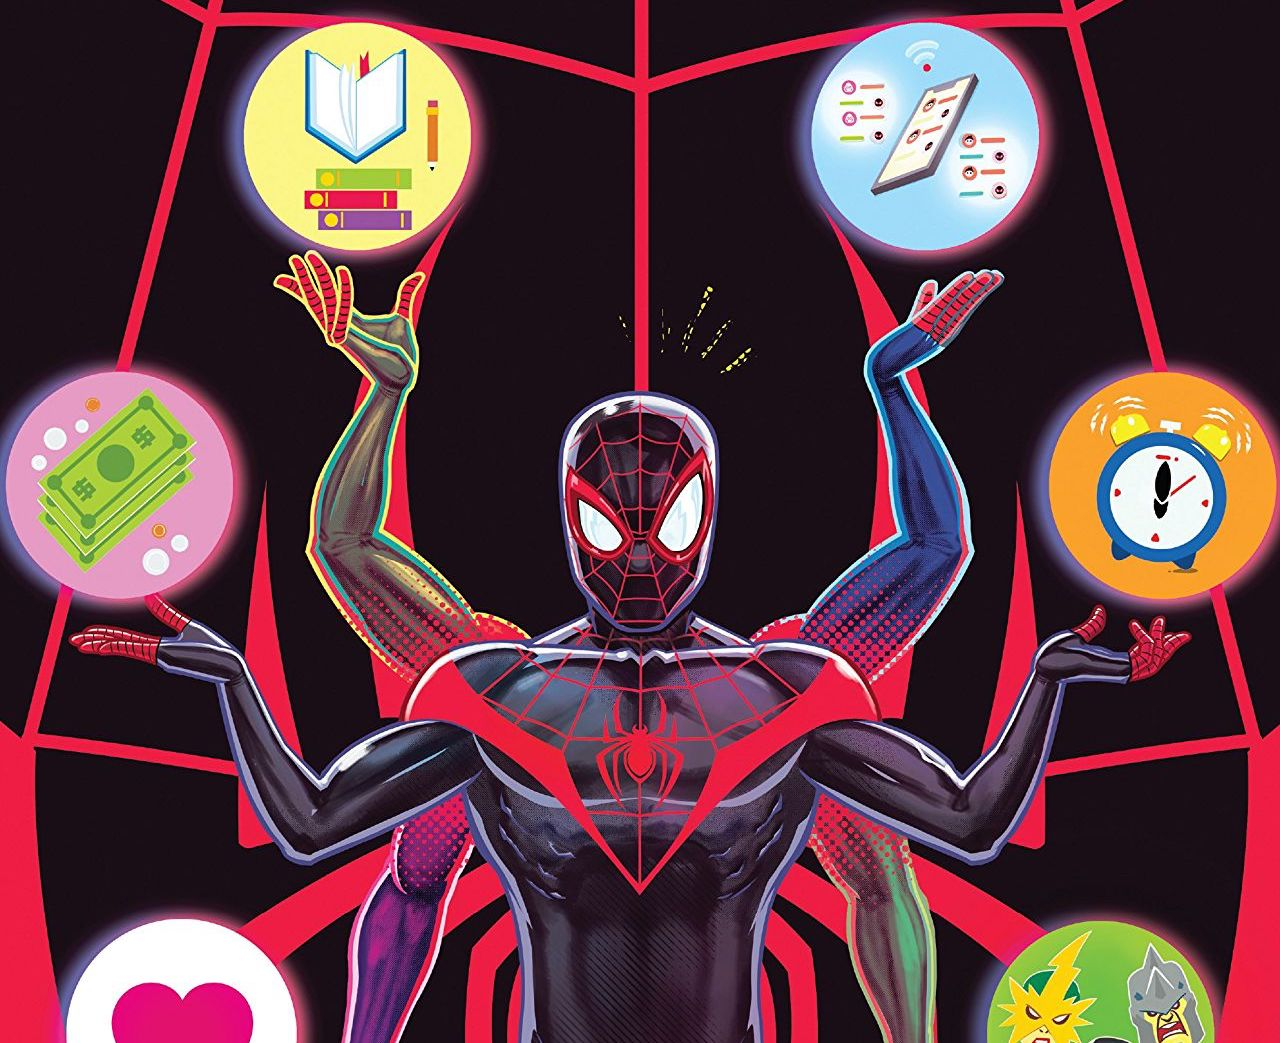 Miles Morales: Spider-Man #2 review: An odd couple caper